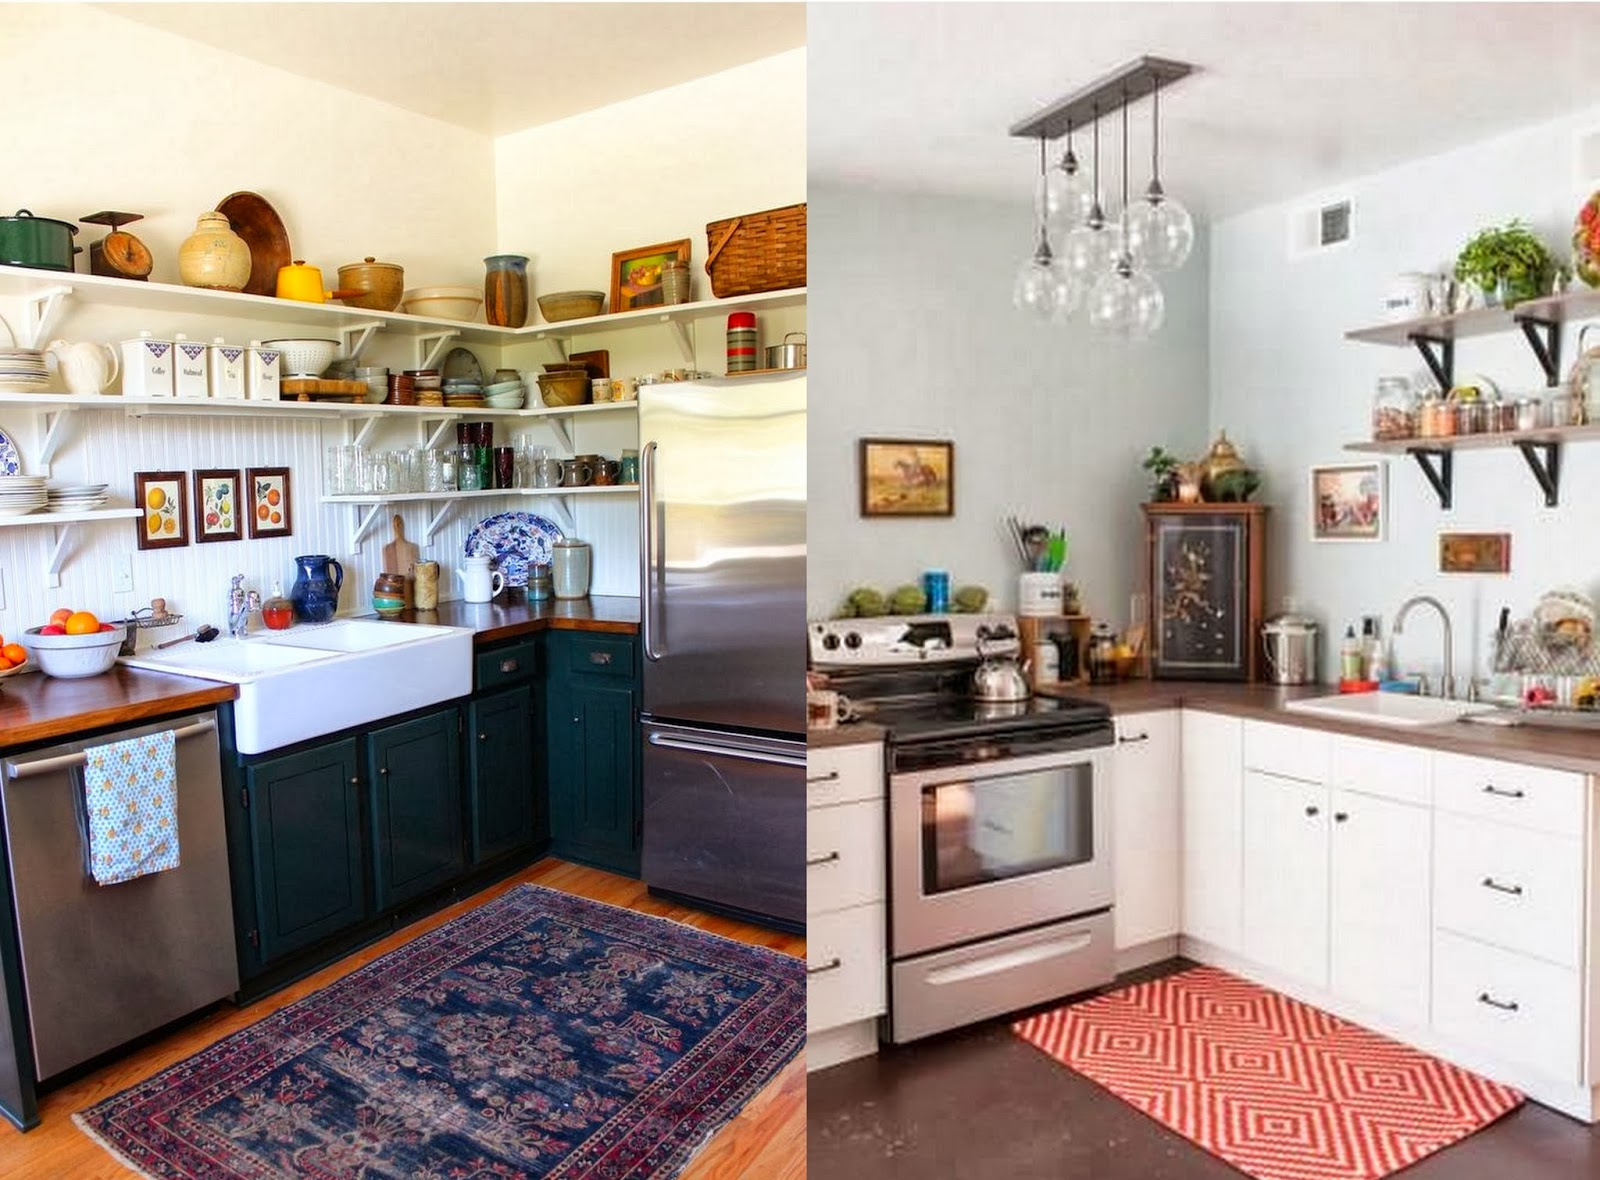 GYPSY YAYA: Open Shelvin' In The Kitchen & Other Rental